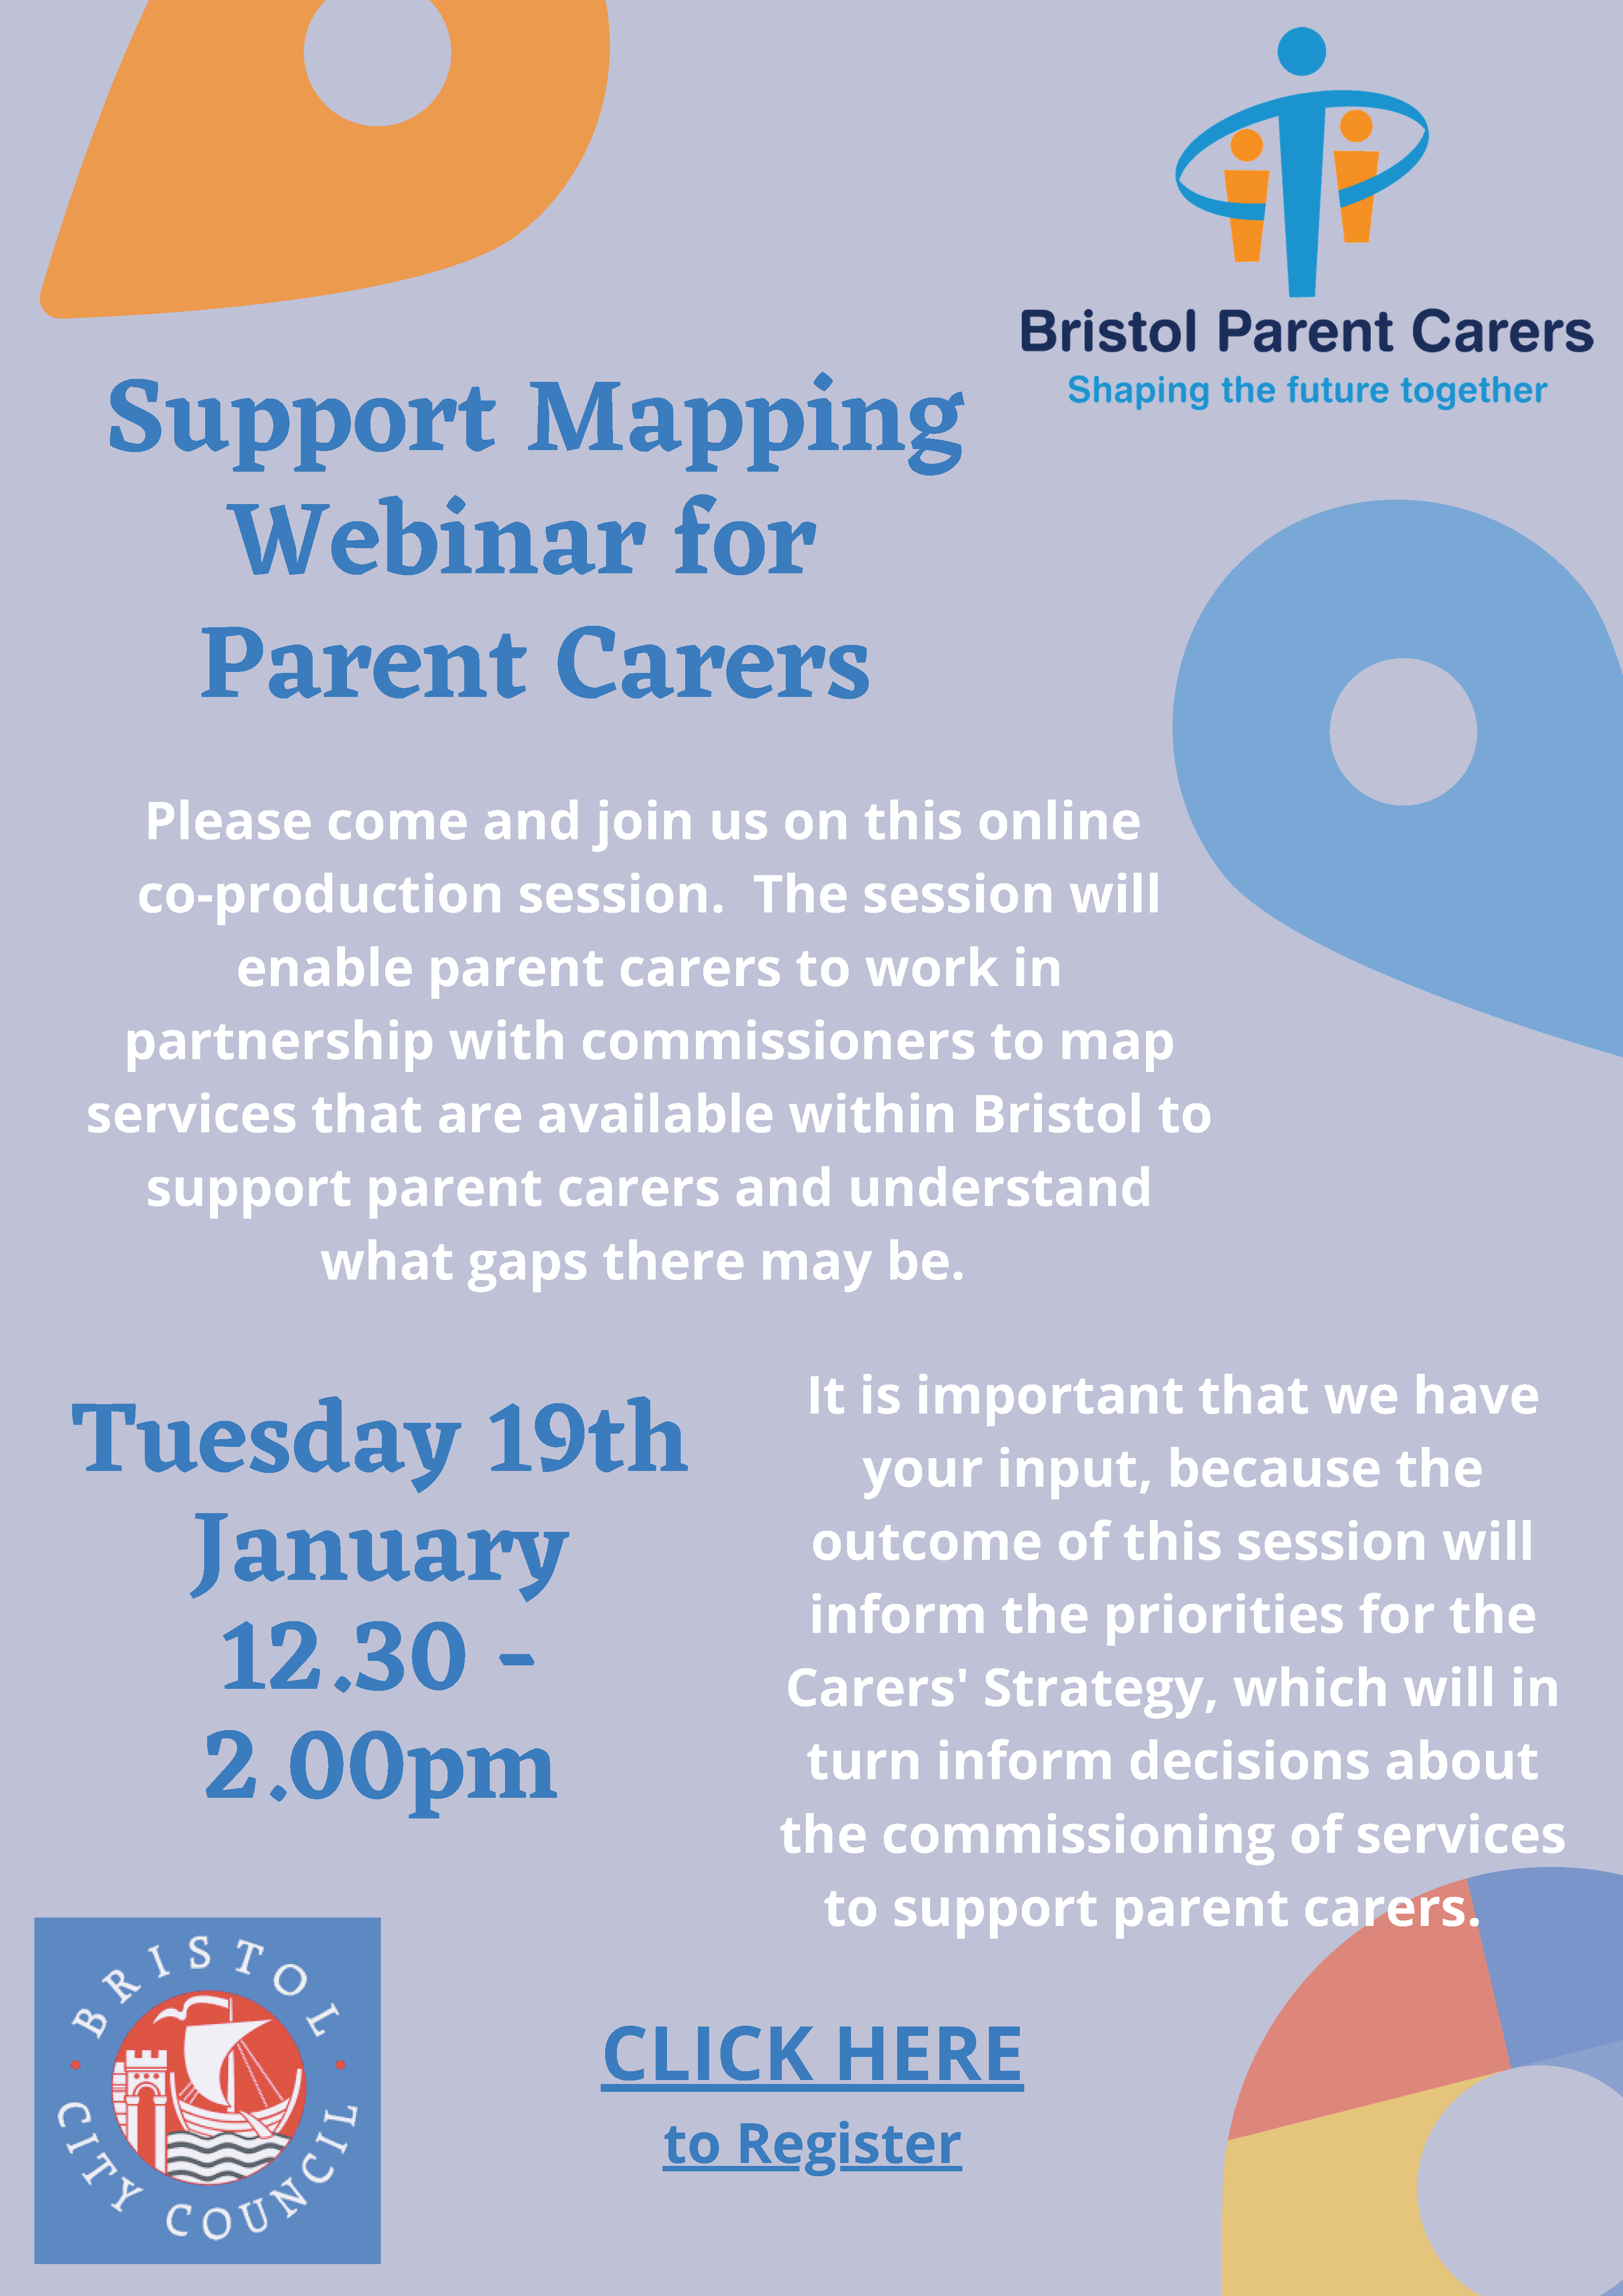 Bristol Parent Carers - Support Mapping Webinar for Parents Carers